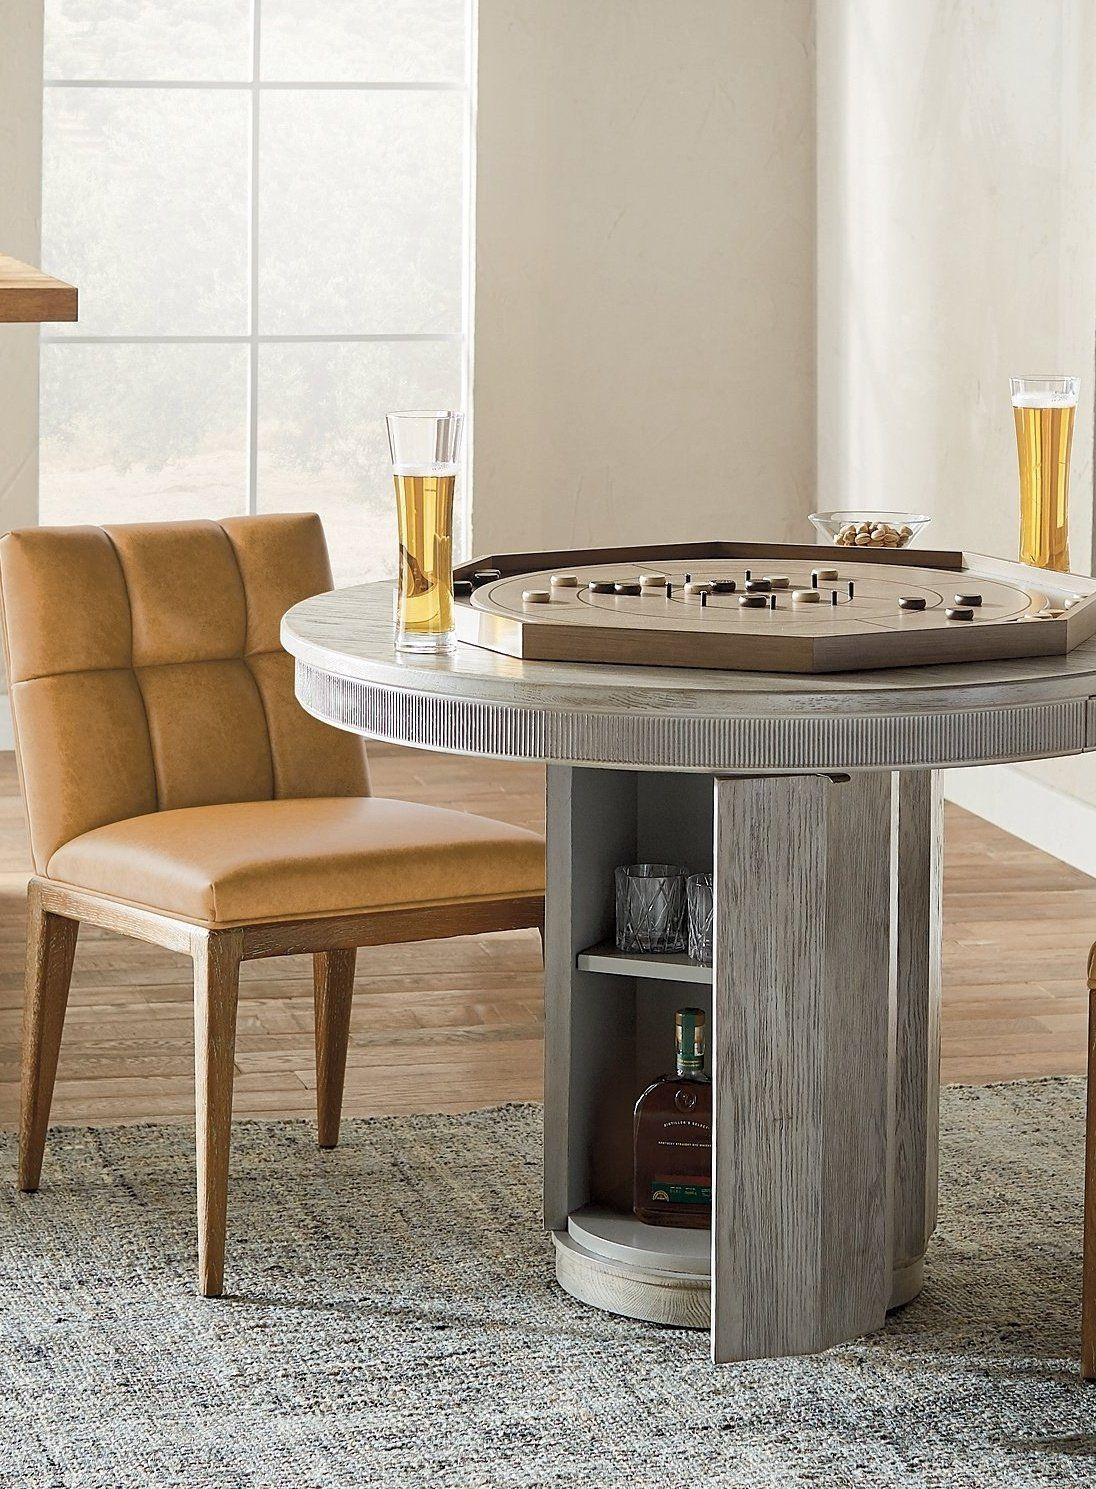 Rainier Round Dining Table   Frontgate   Round dining table ...